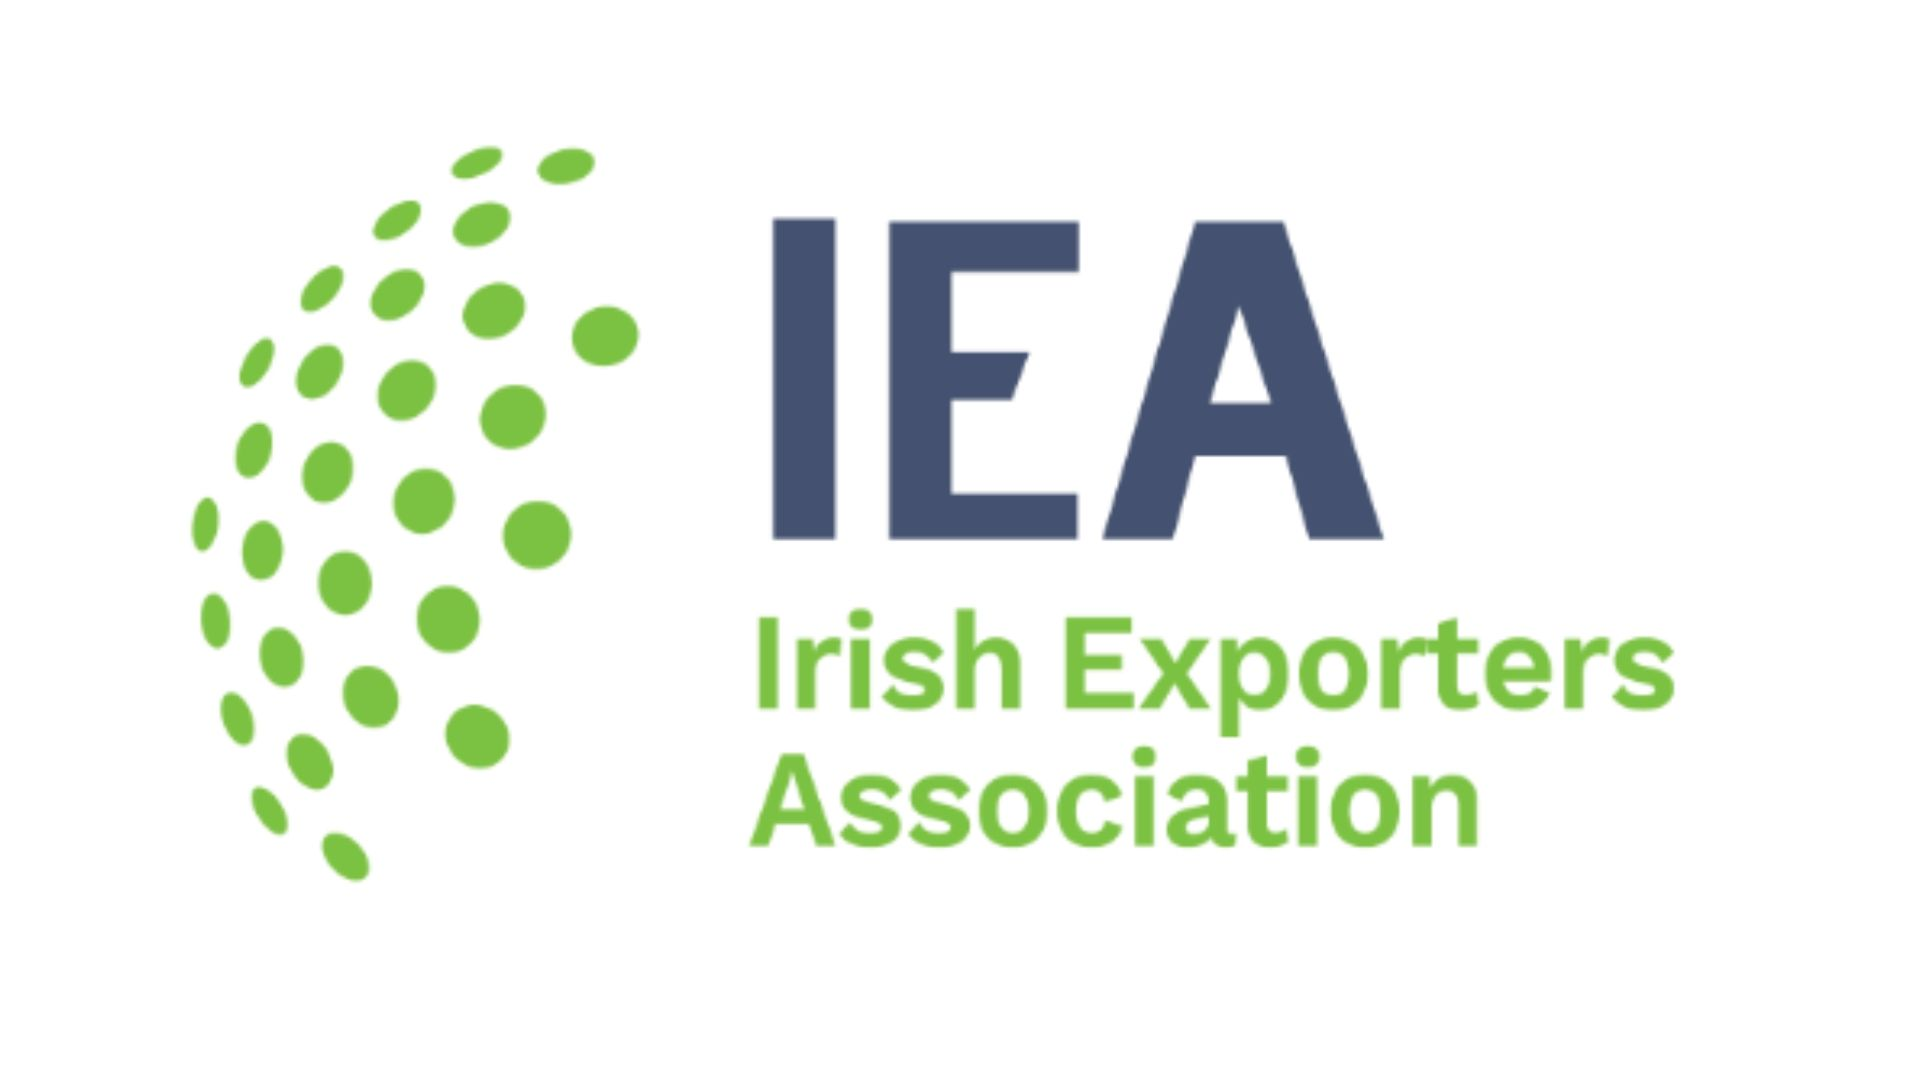 Irish Exporters Association Reveals Top 3 Irish Business Destinations